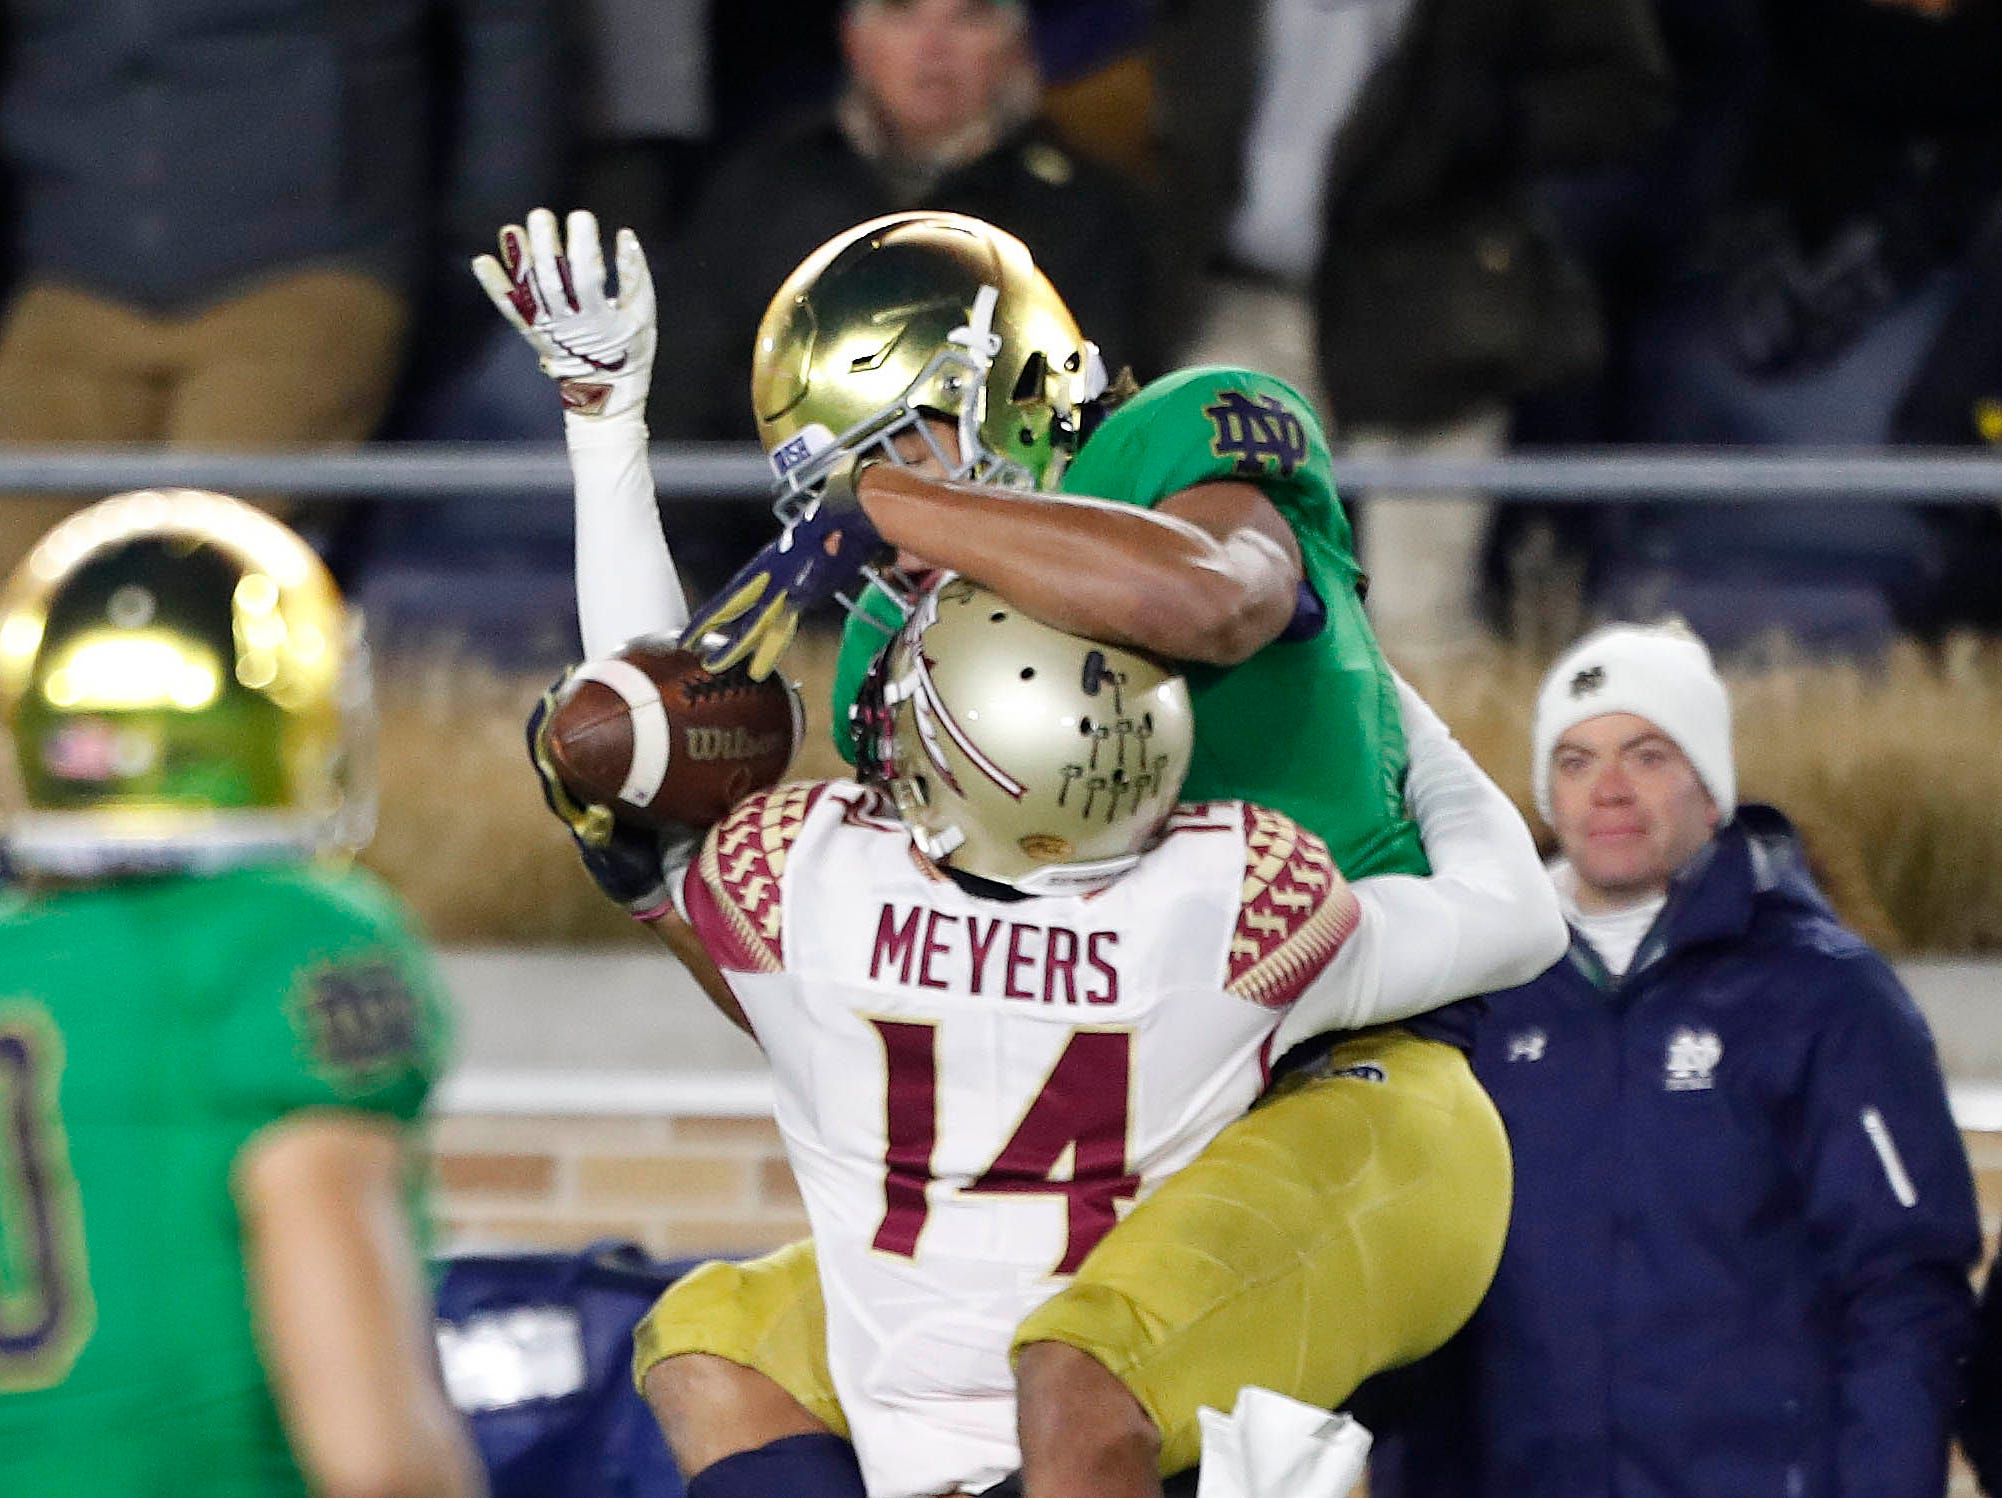 Nov 10, 2018; South Bend, IN, USA; Notre Dame Fighting Irish wide receiver (83) is interfered with by Florida State Seminoles defensive back Kyle Meyers (14) during the first quarter at Notre Dame Stadium. Mandatory Credit: Brian Spurlock-USA TODAY Sports